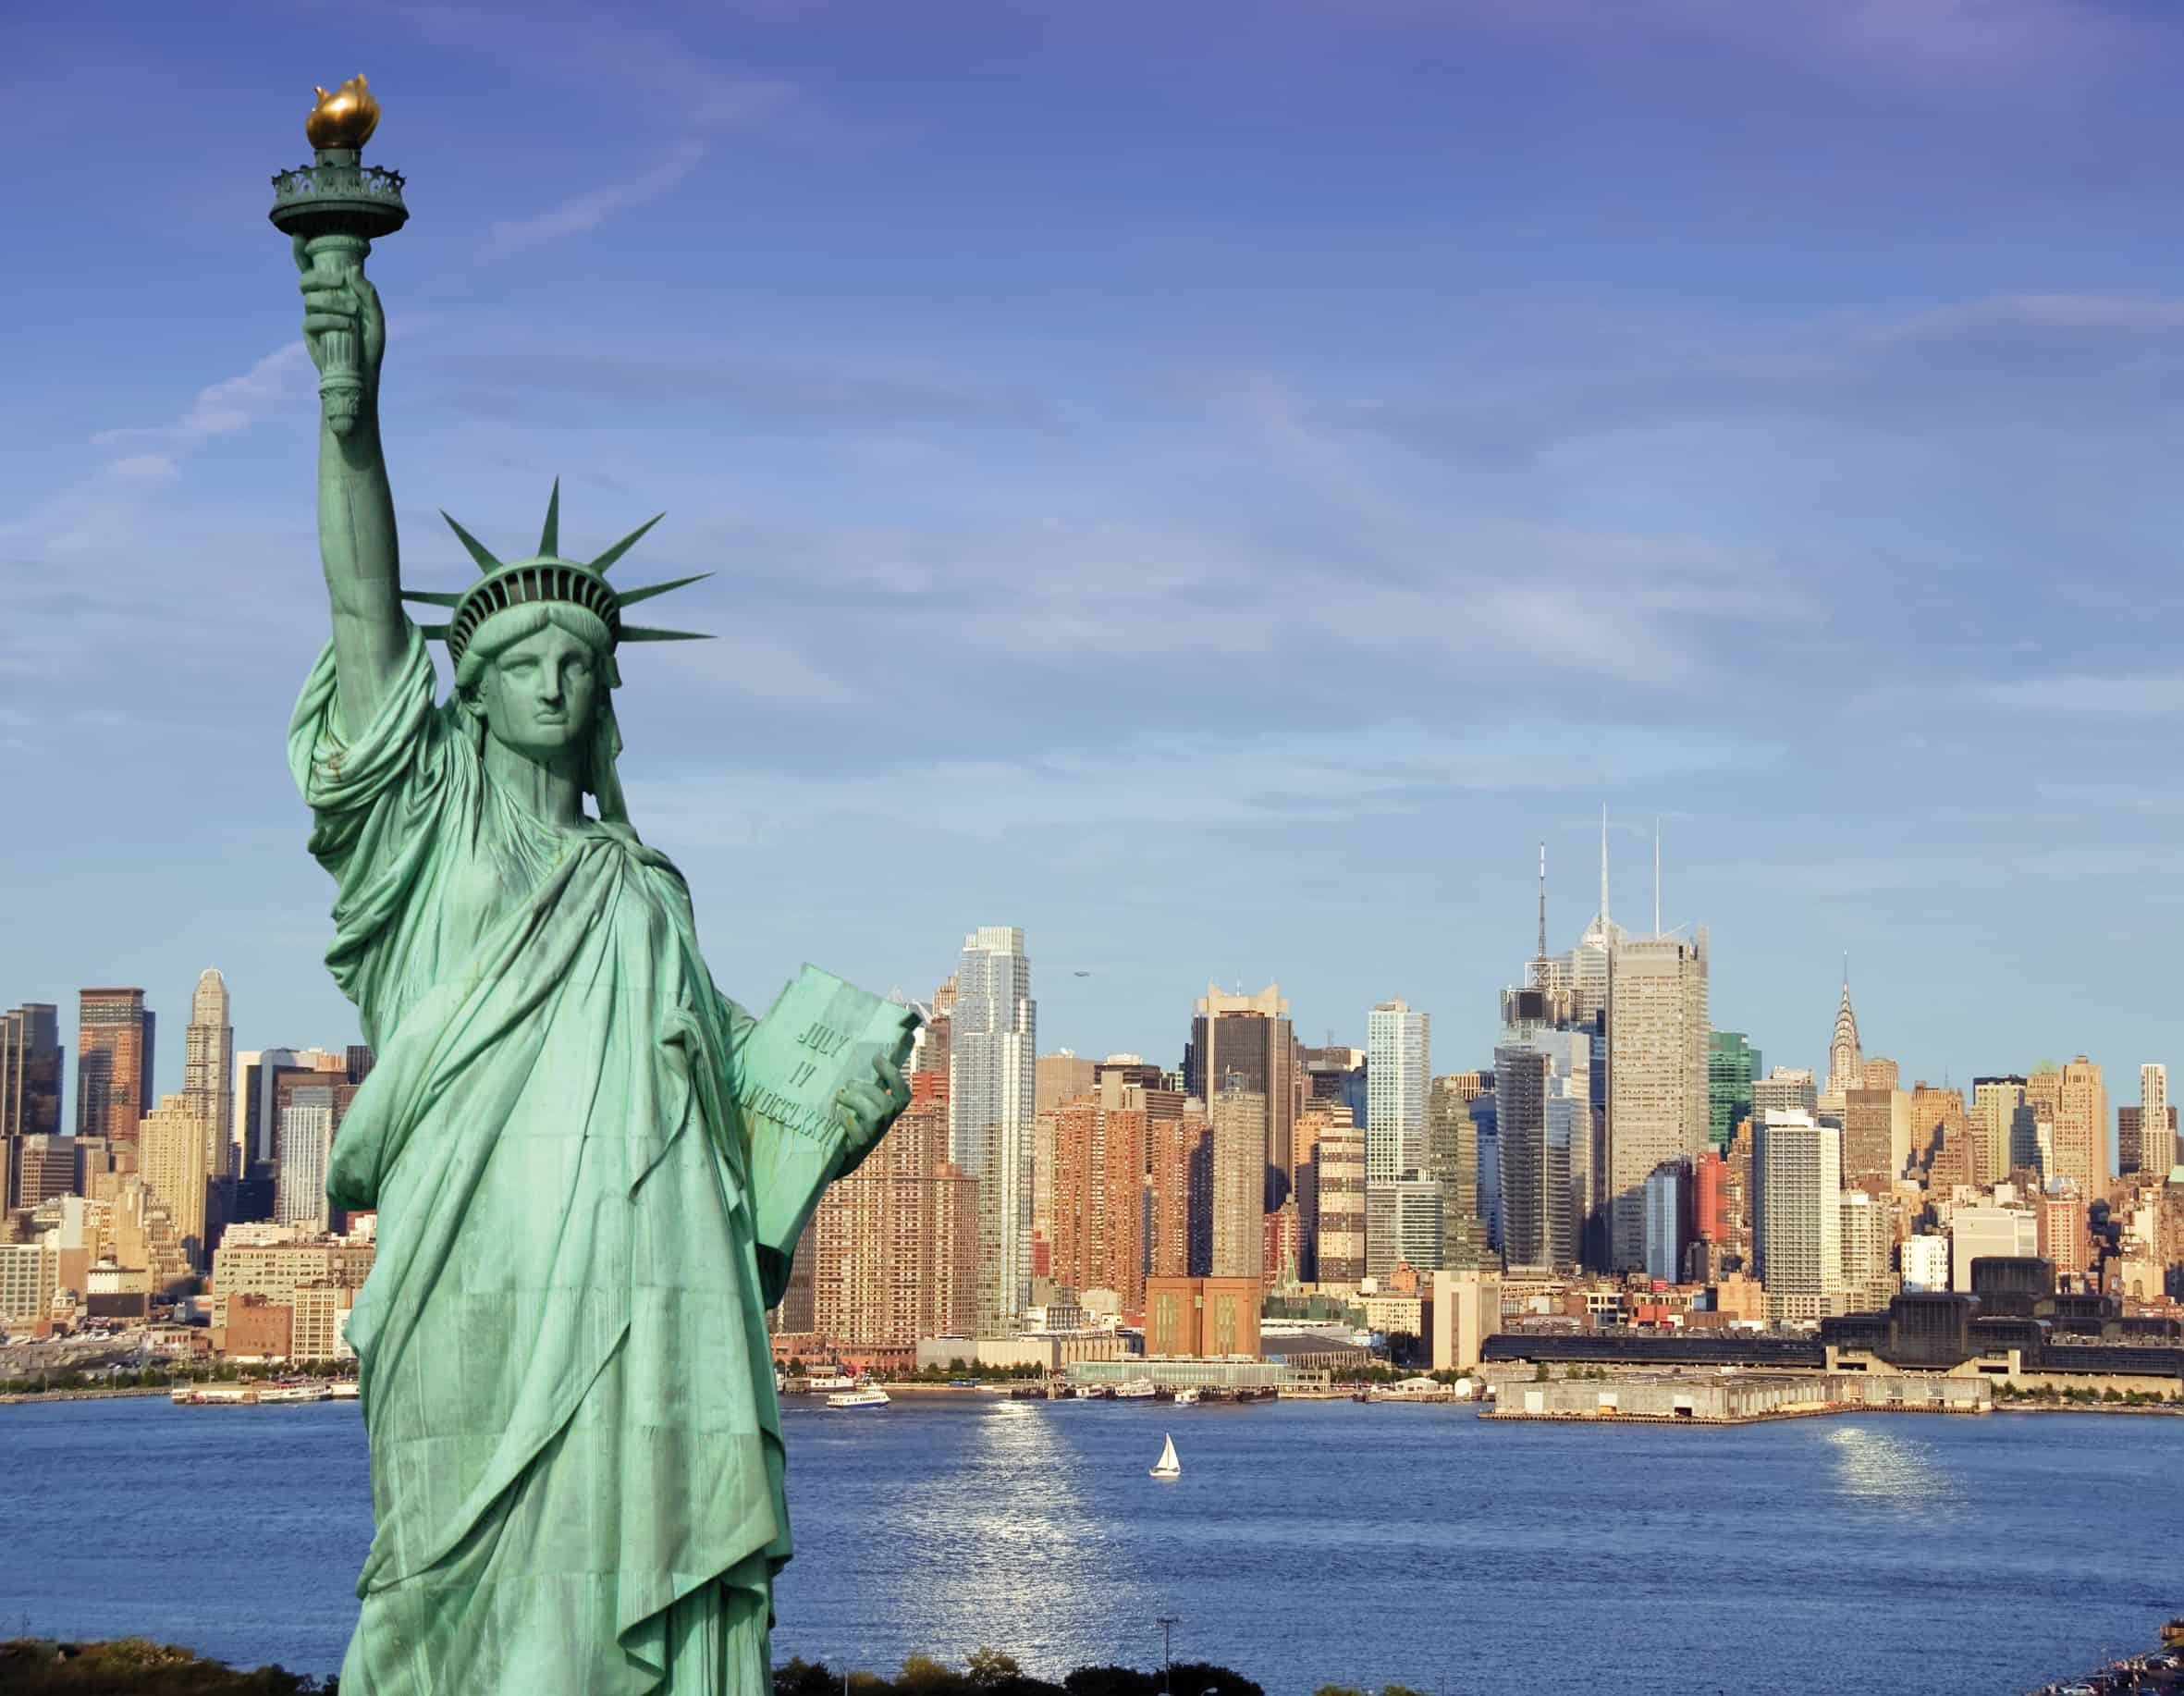 Statue of Liberty – famous sculpture